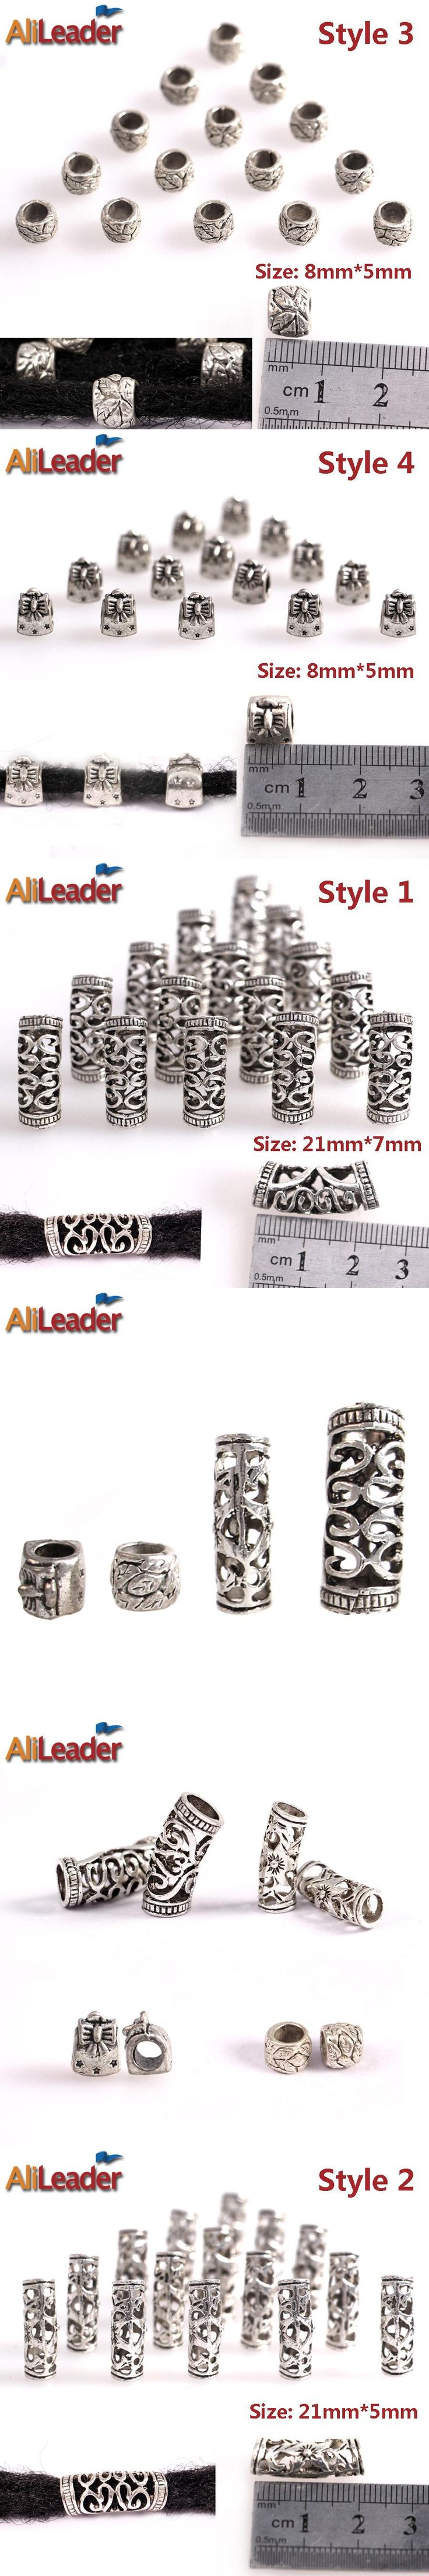 AliLeader Metal Dreadlock Beads Adjustable Braid Cuffs For Braiding Hair Mixed 4 Sizes Tibetan Silver Rings And Beads 20Pcs/Lot